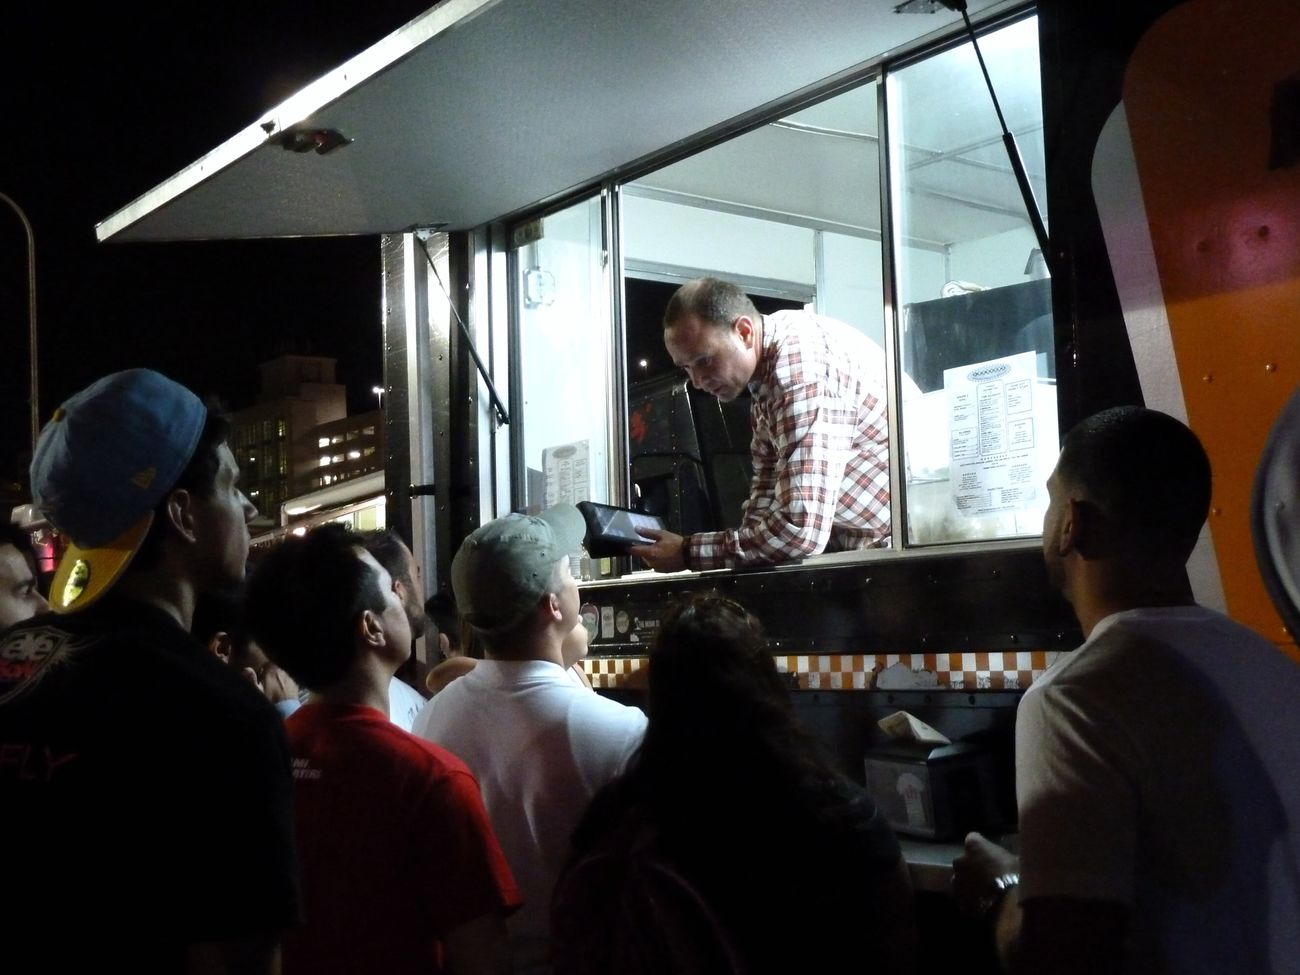 Food Truck Listening Night Photography Ordering At The Counter Ordering Food Queue Queueing Taking Orders Taking Orders At Work